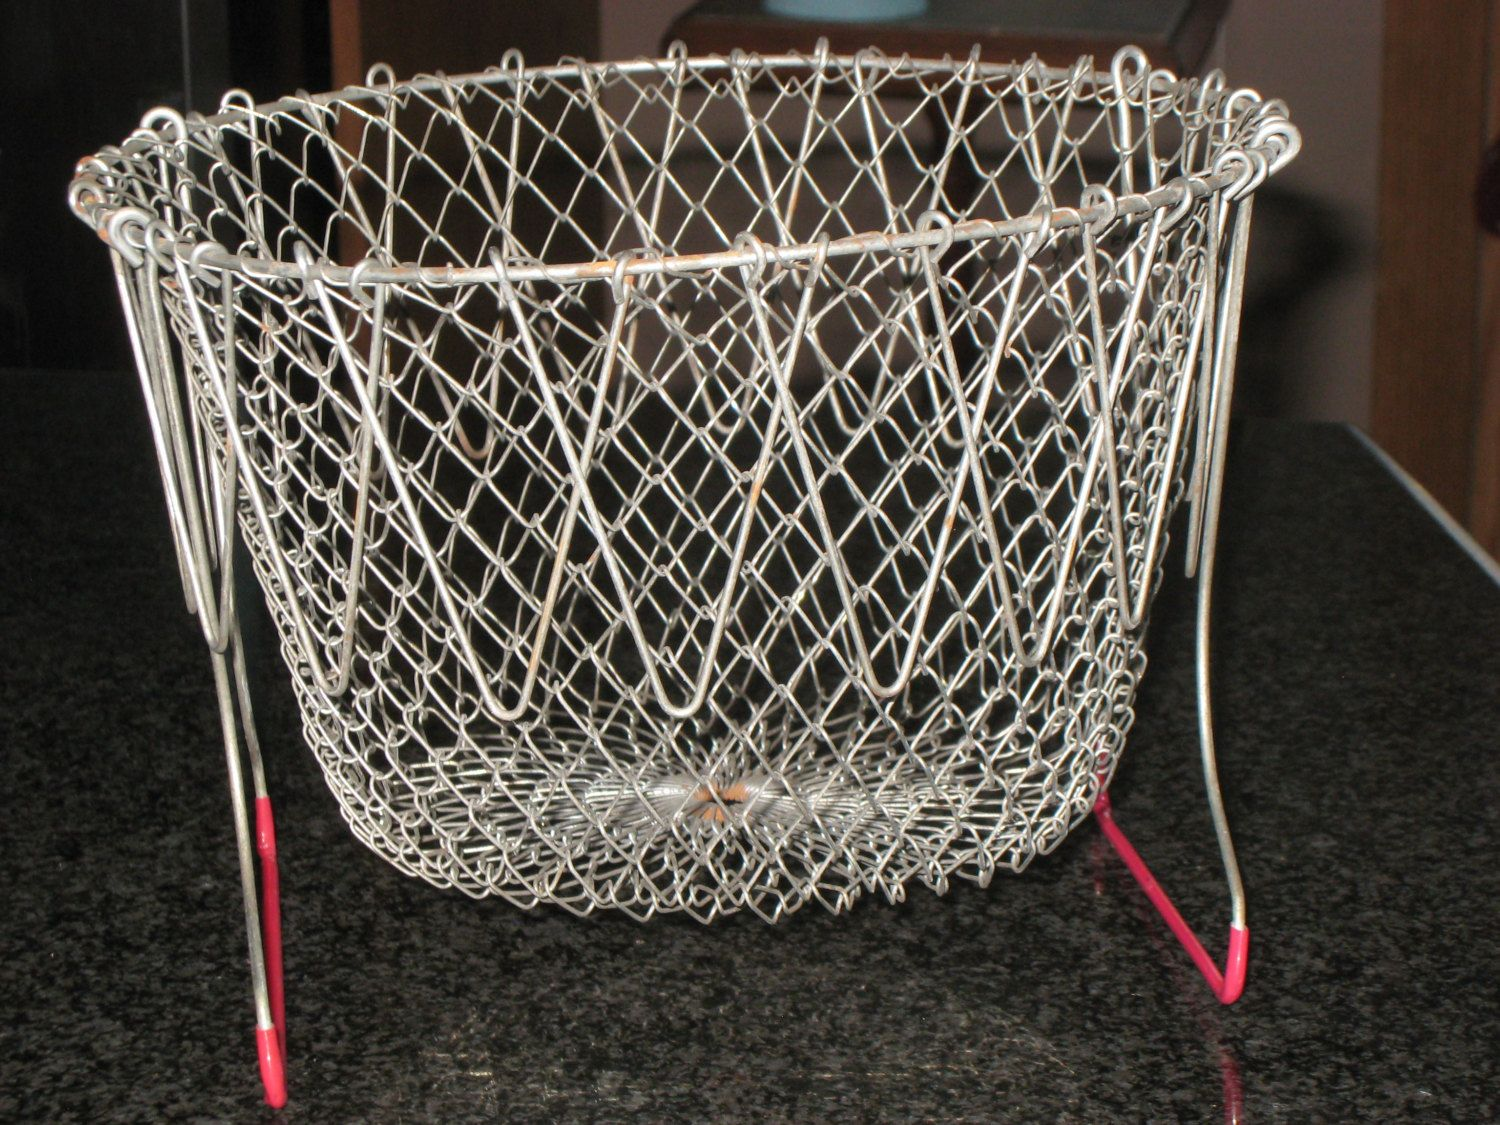 Wire Egg Basket/Wire Strainer/Wire Collapsible Basket Strainer by ...